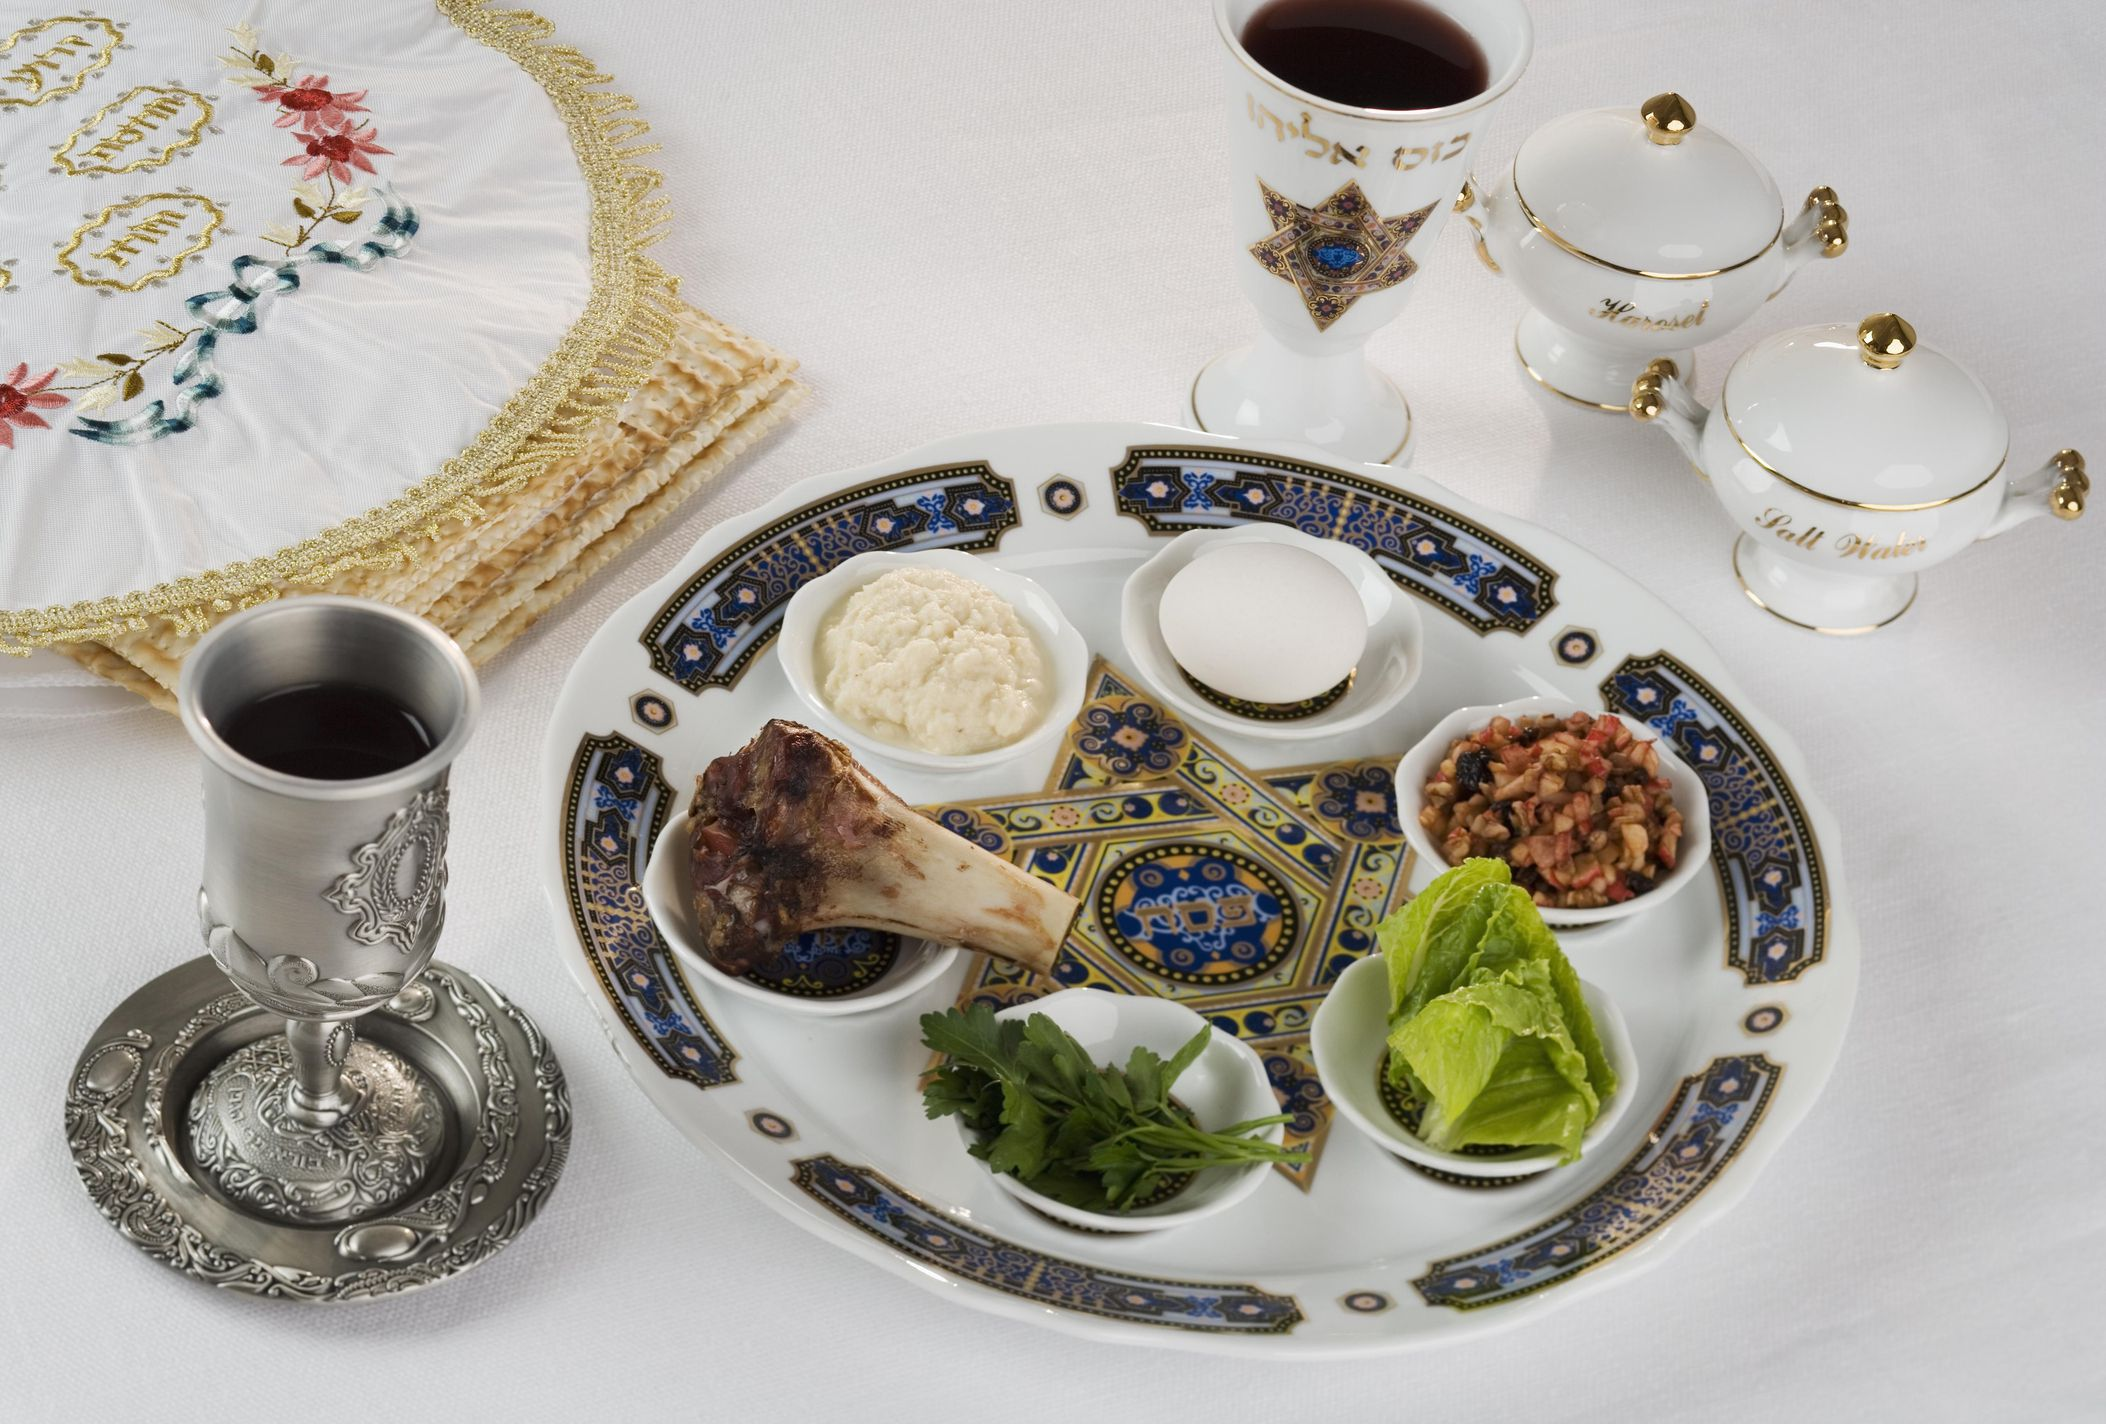 Traditional Passover Foods For The Seder Meal